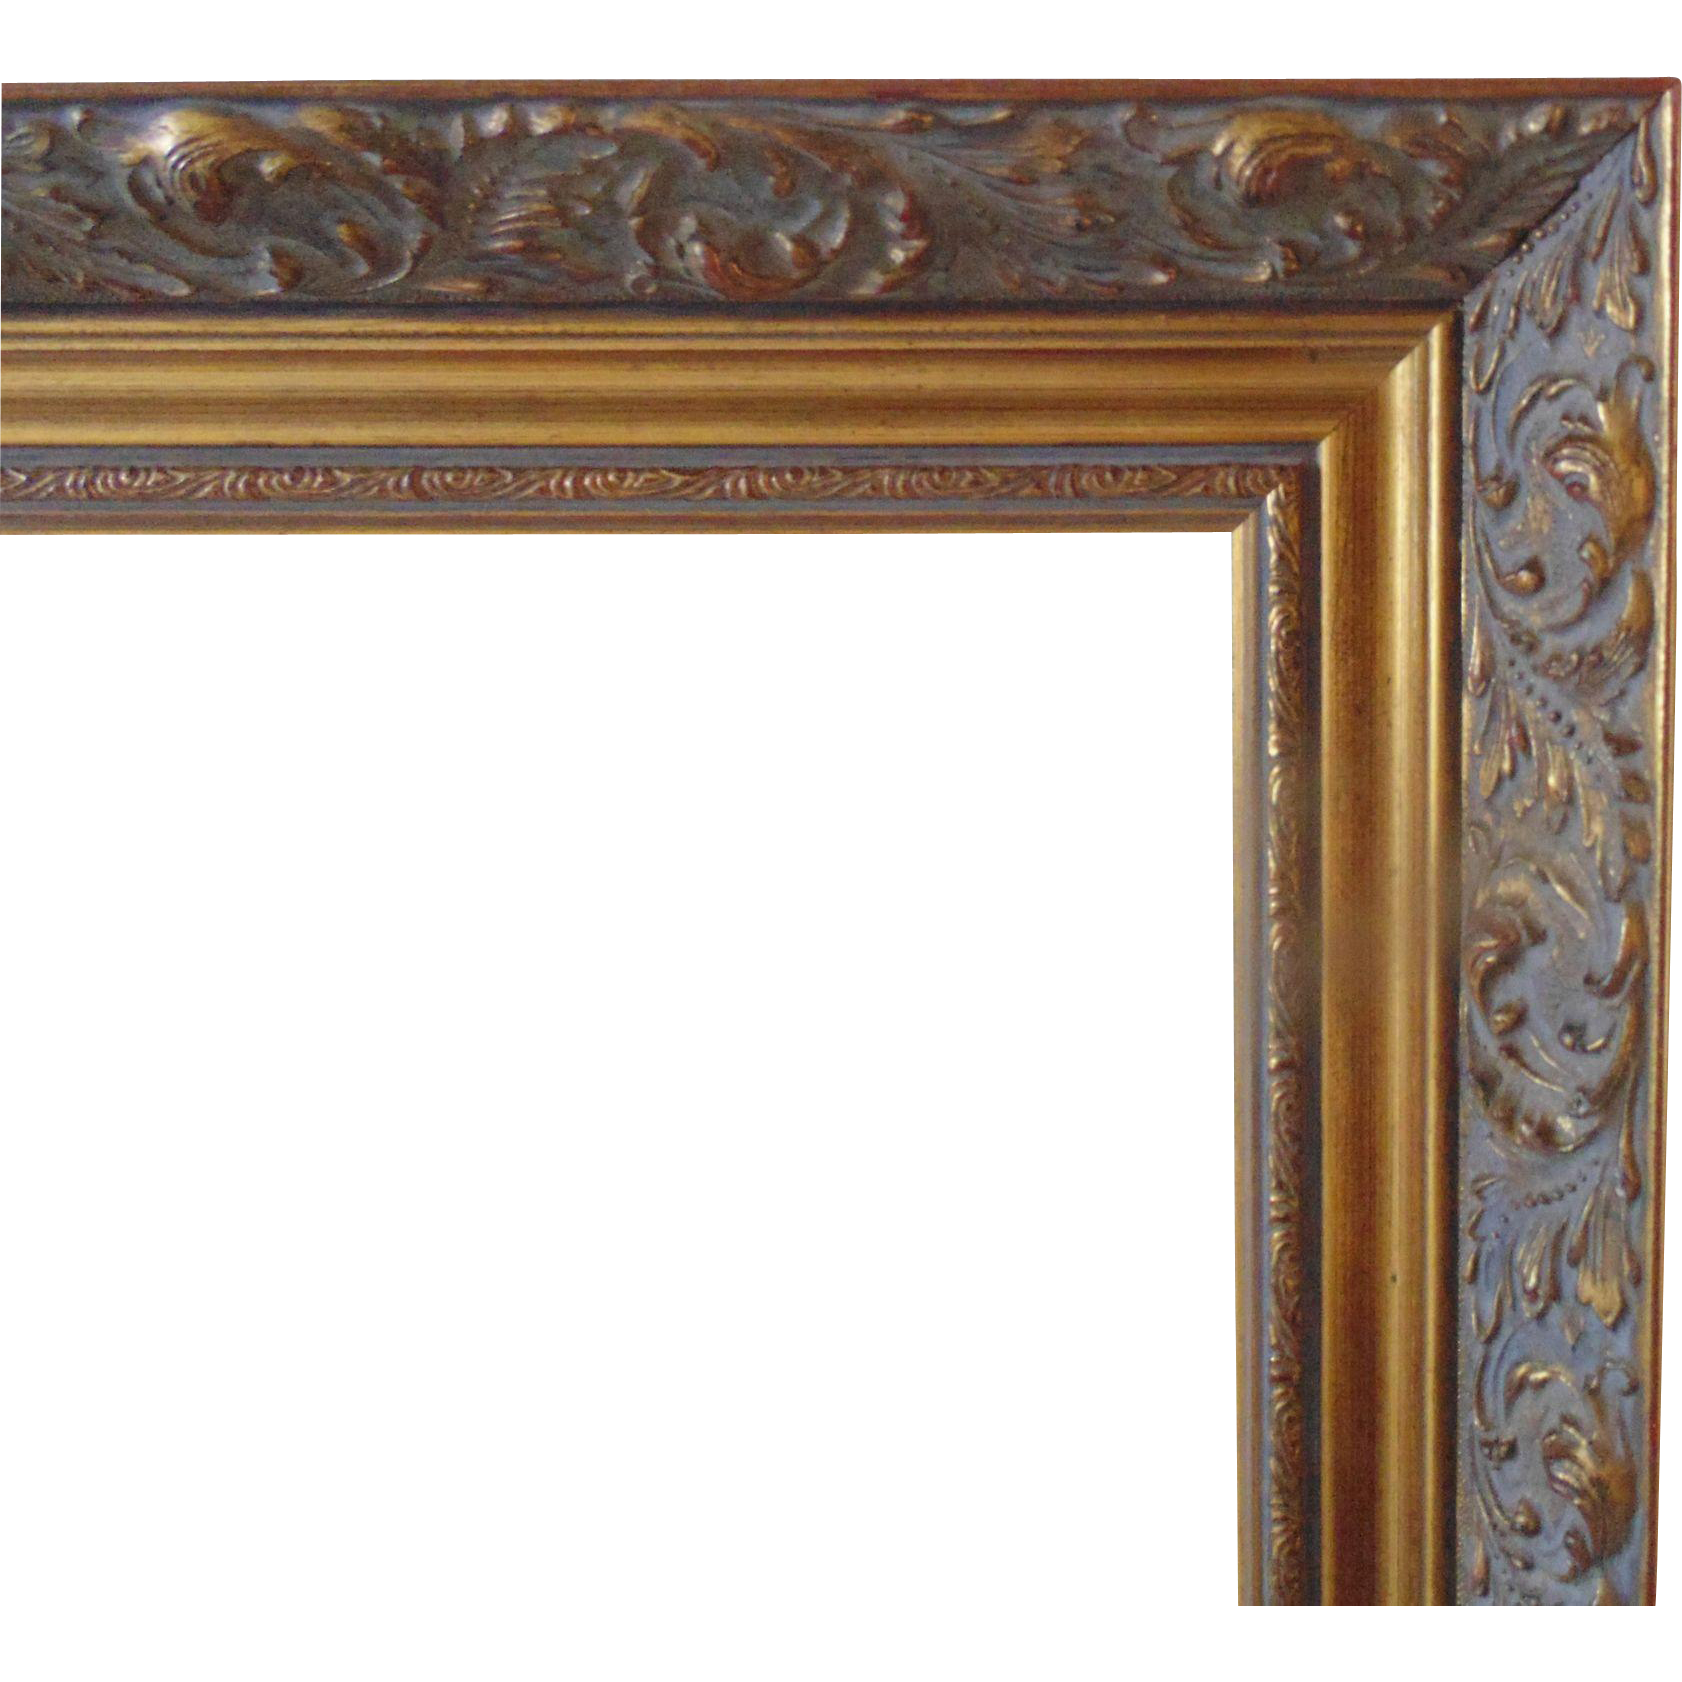 Large Vintage Gold Picture Wood Frame W Rococo Swirls For